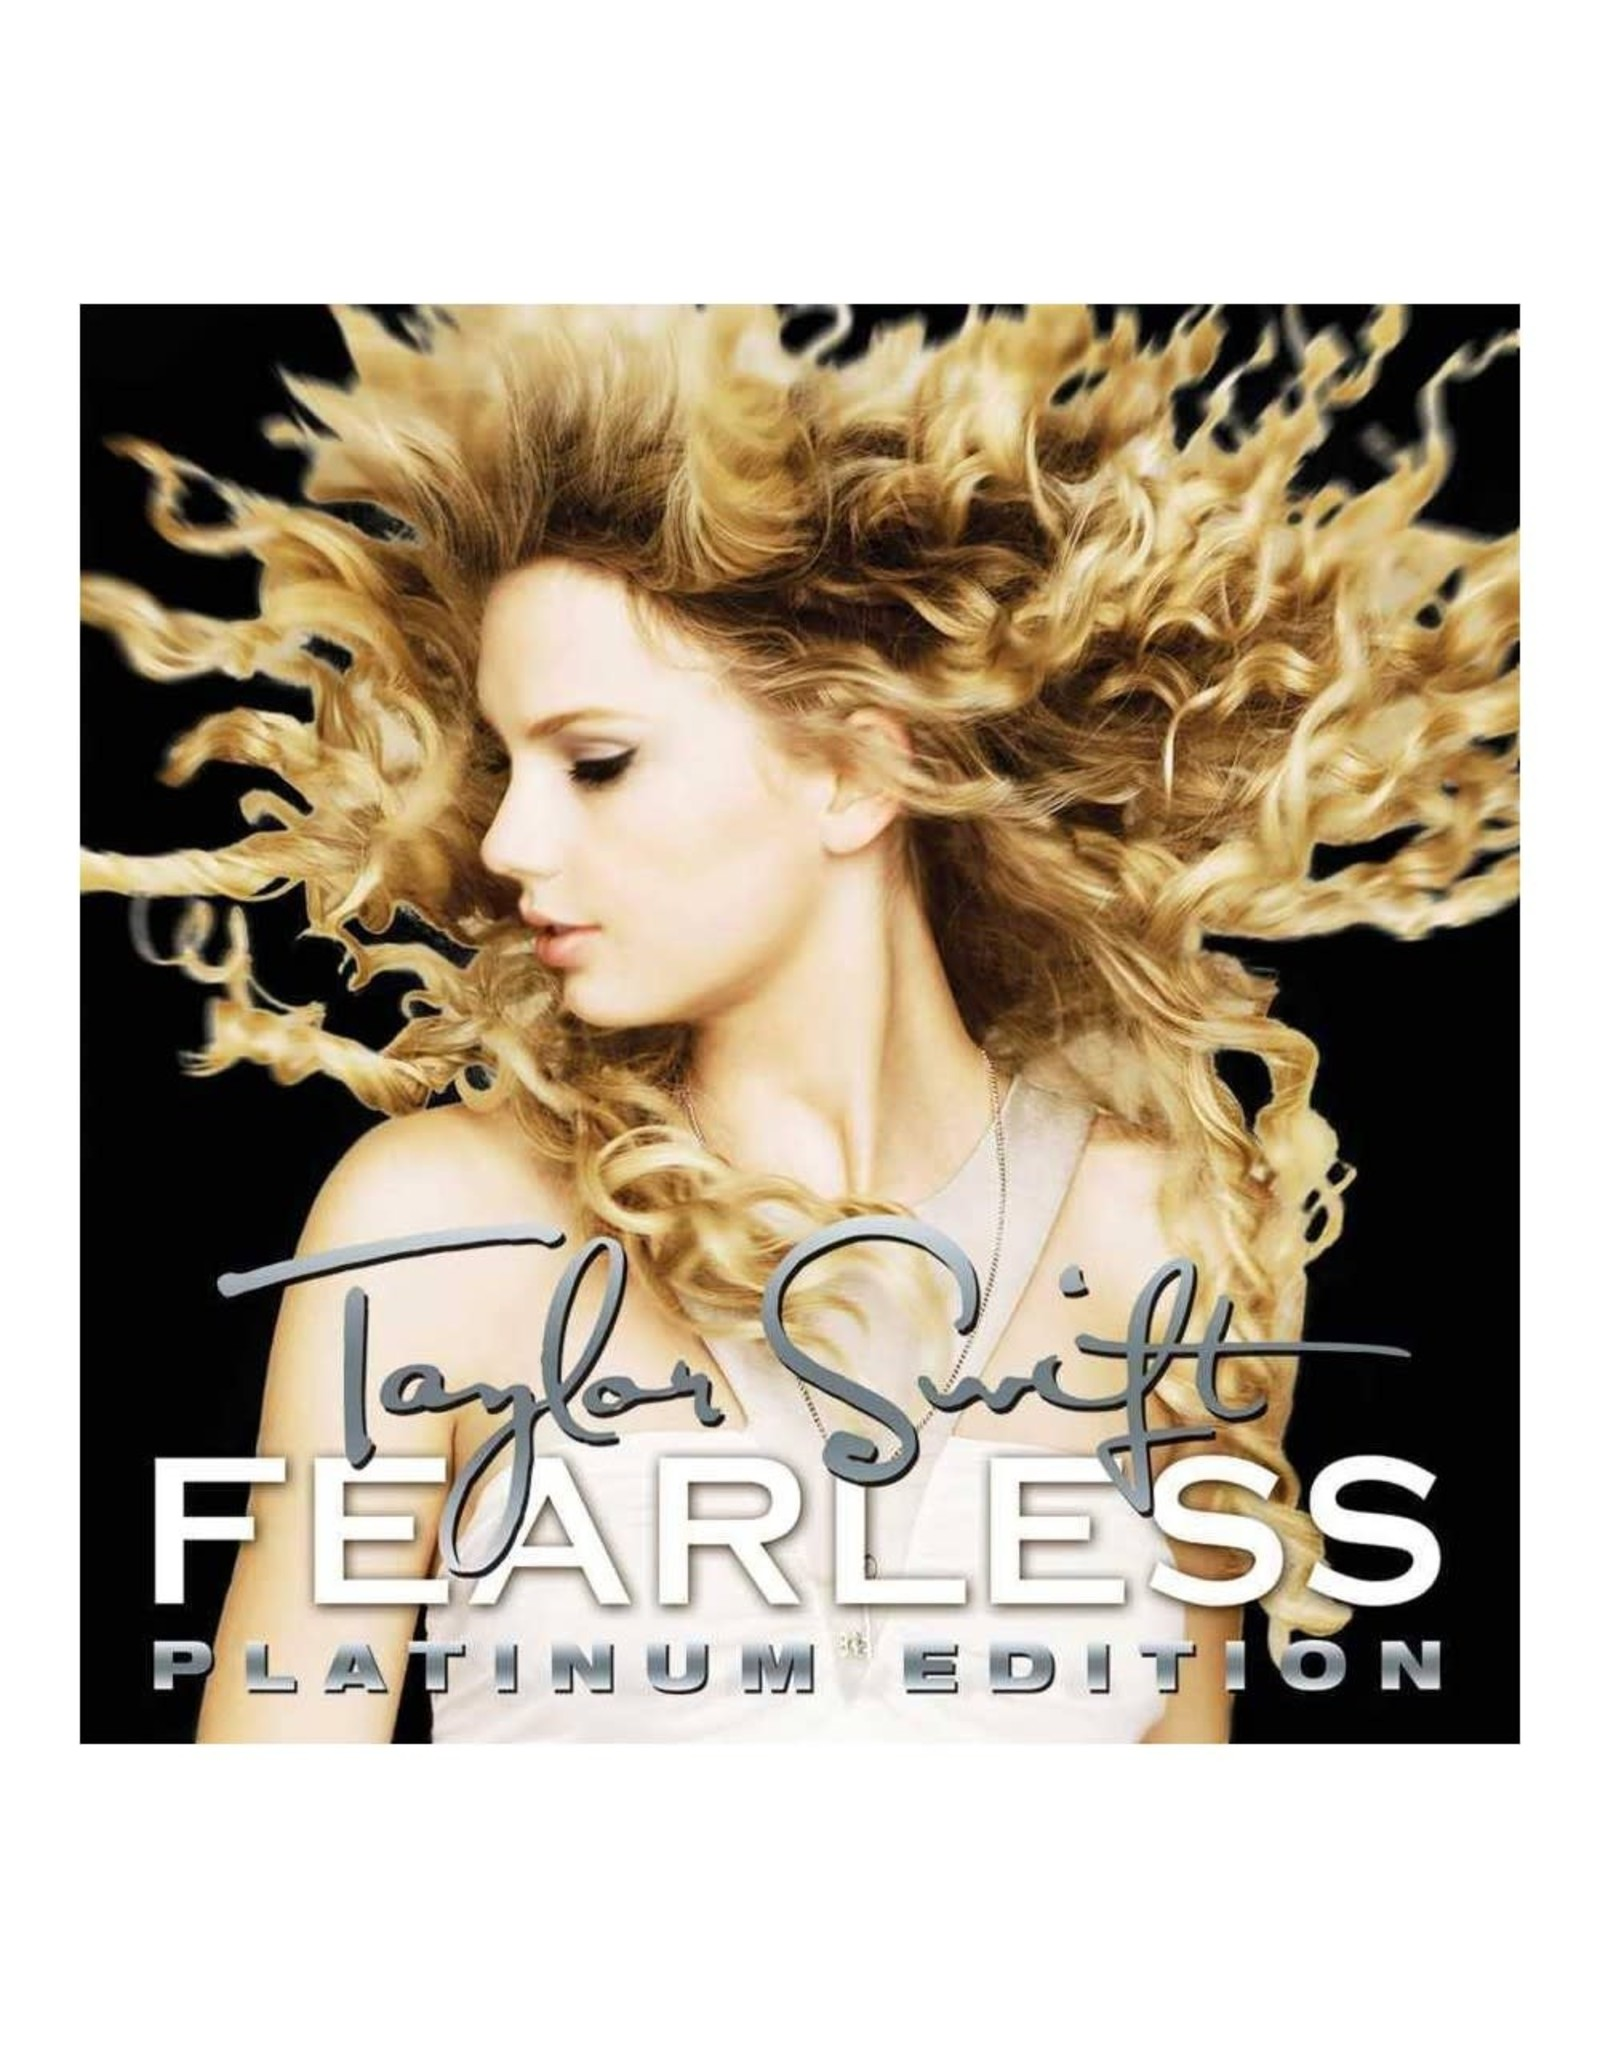 Swift, Taylor - Fearless (Platinum Edition) LP